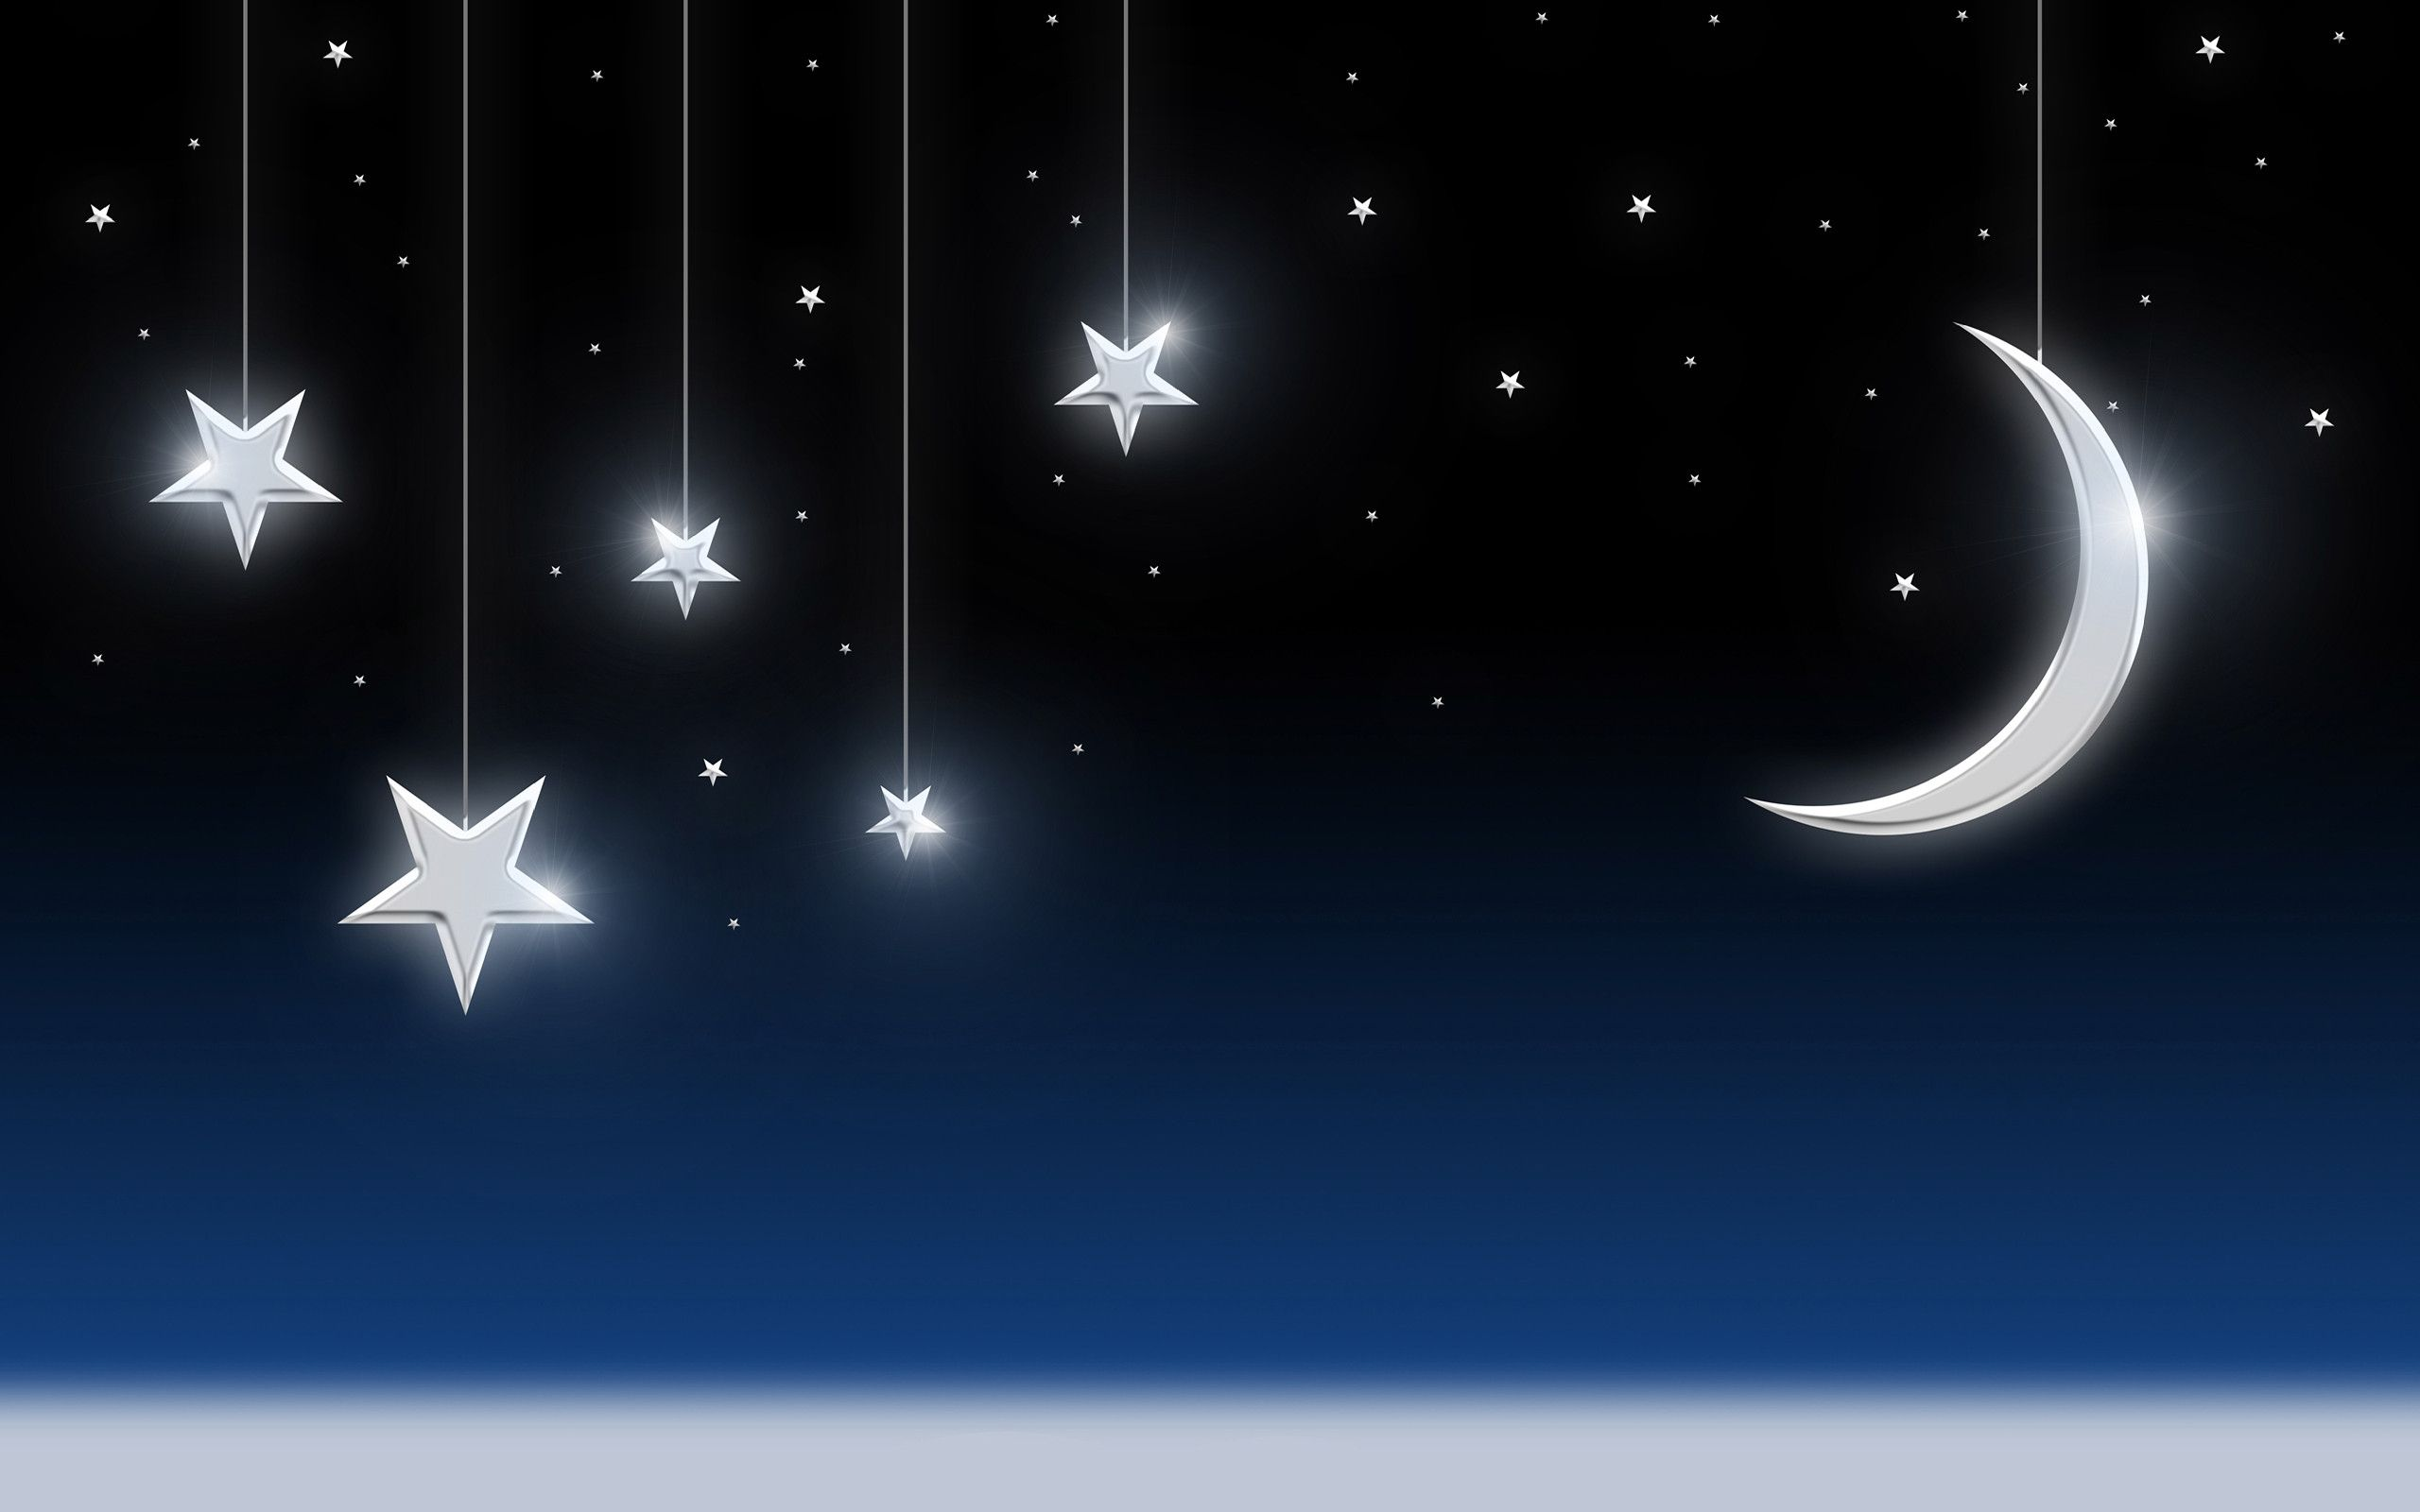 Wallpaper Of Moon And Stars